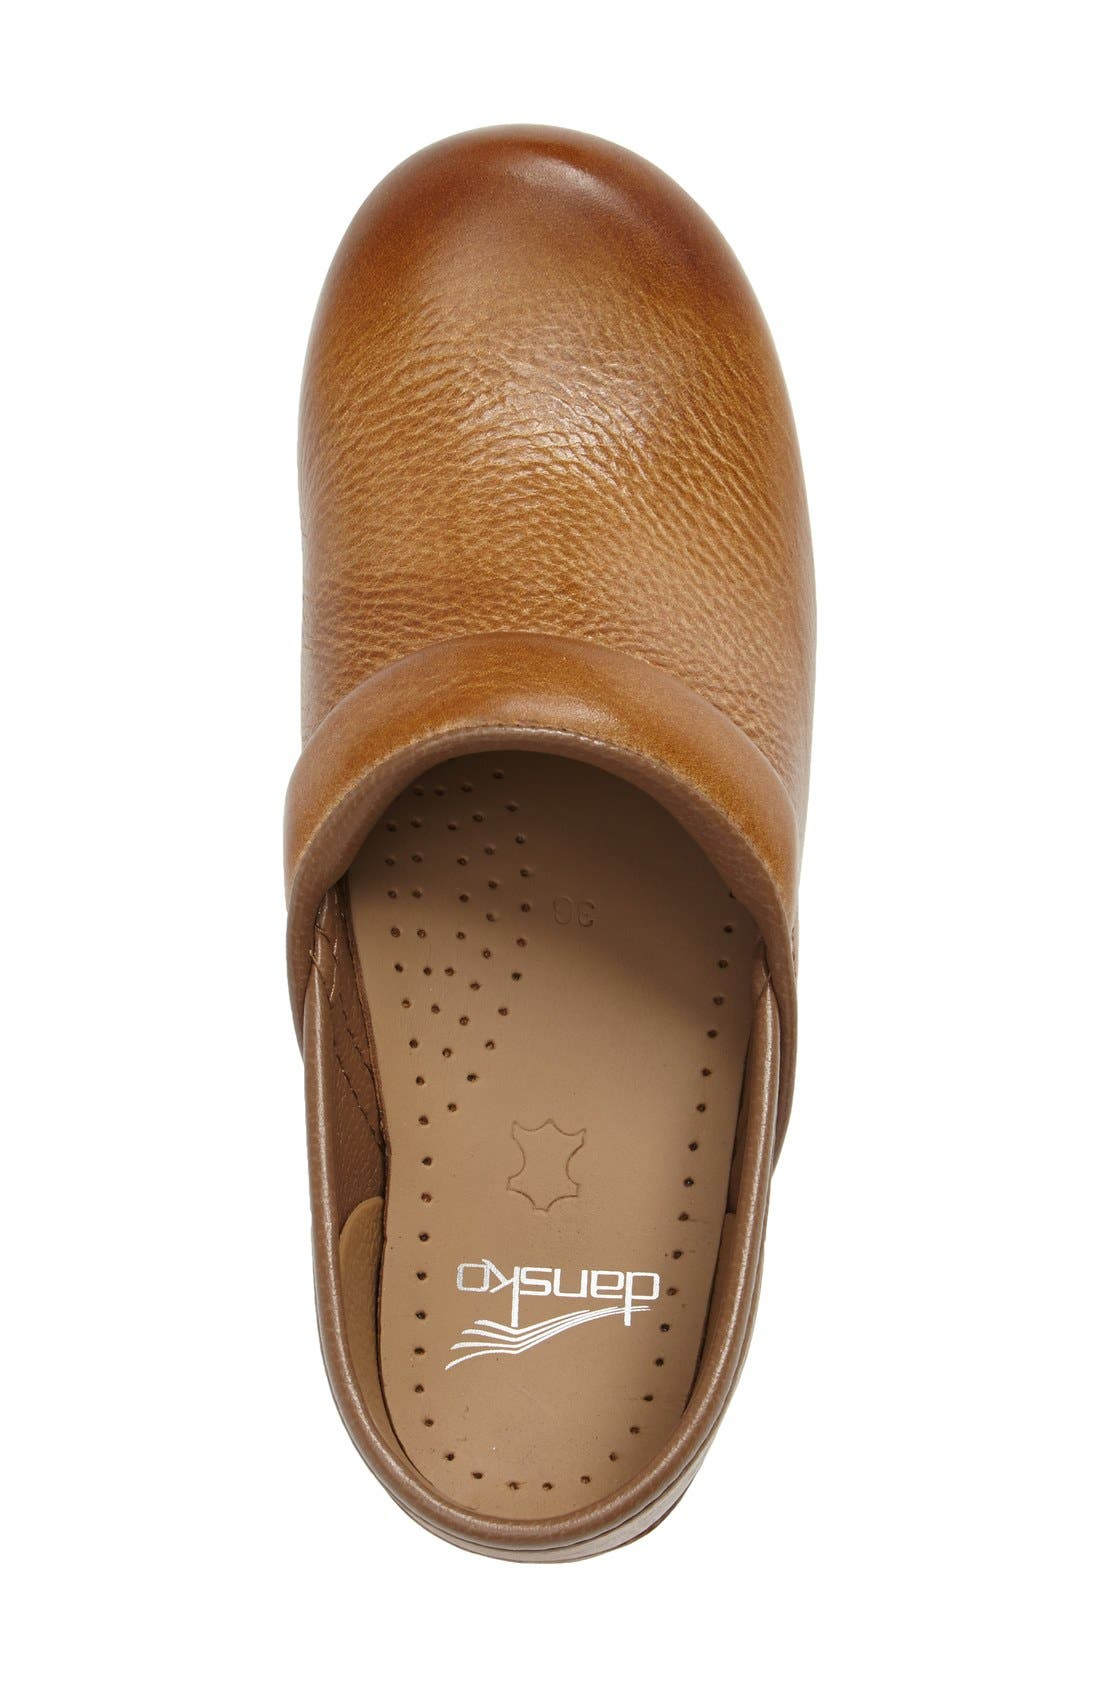 Distressed Professional Clog,                             Alternate thumbnail 8, color,                             HONEY LEATHER